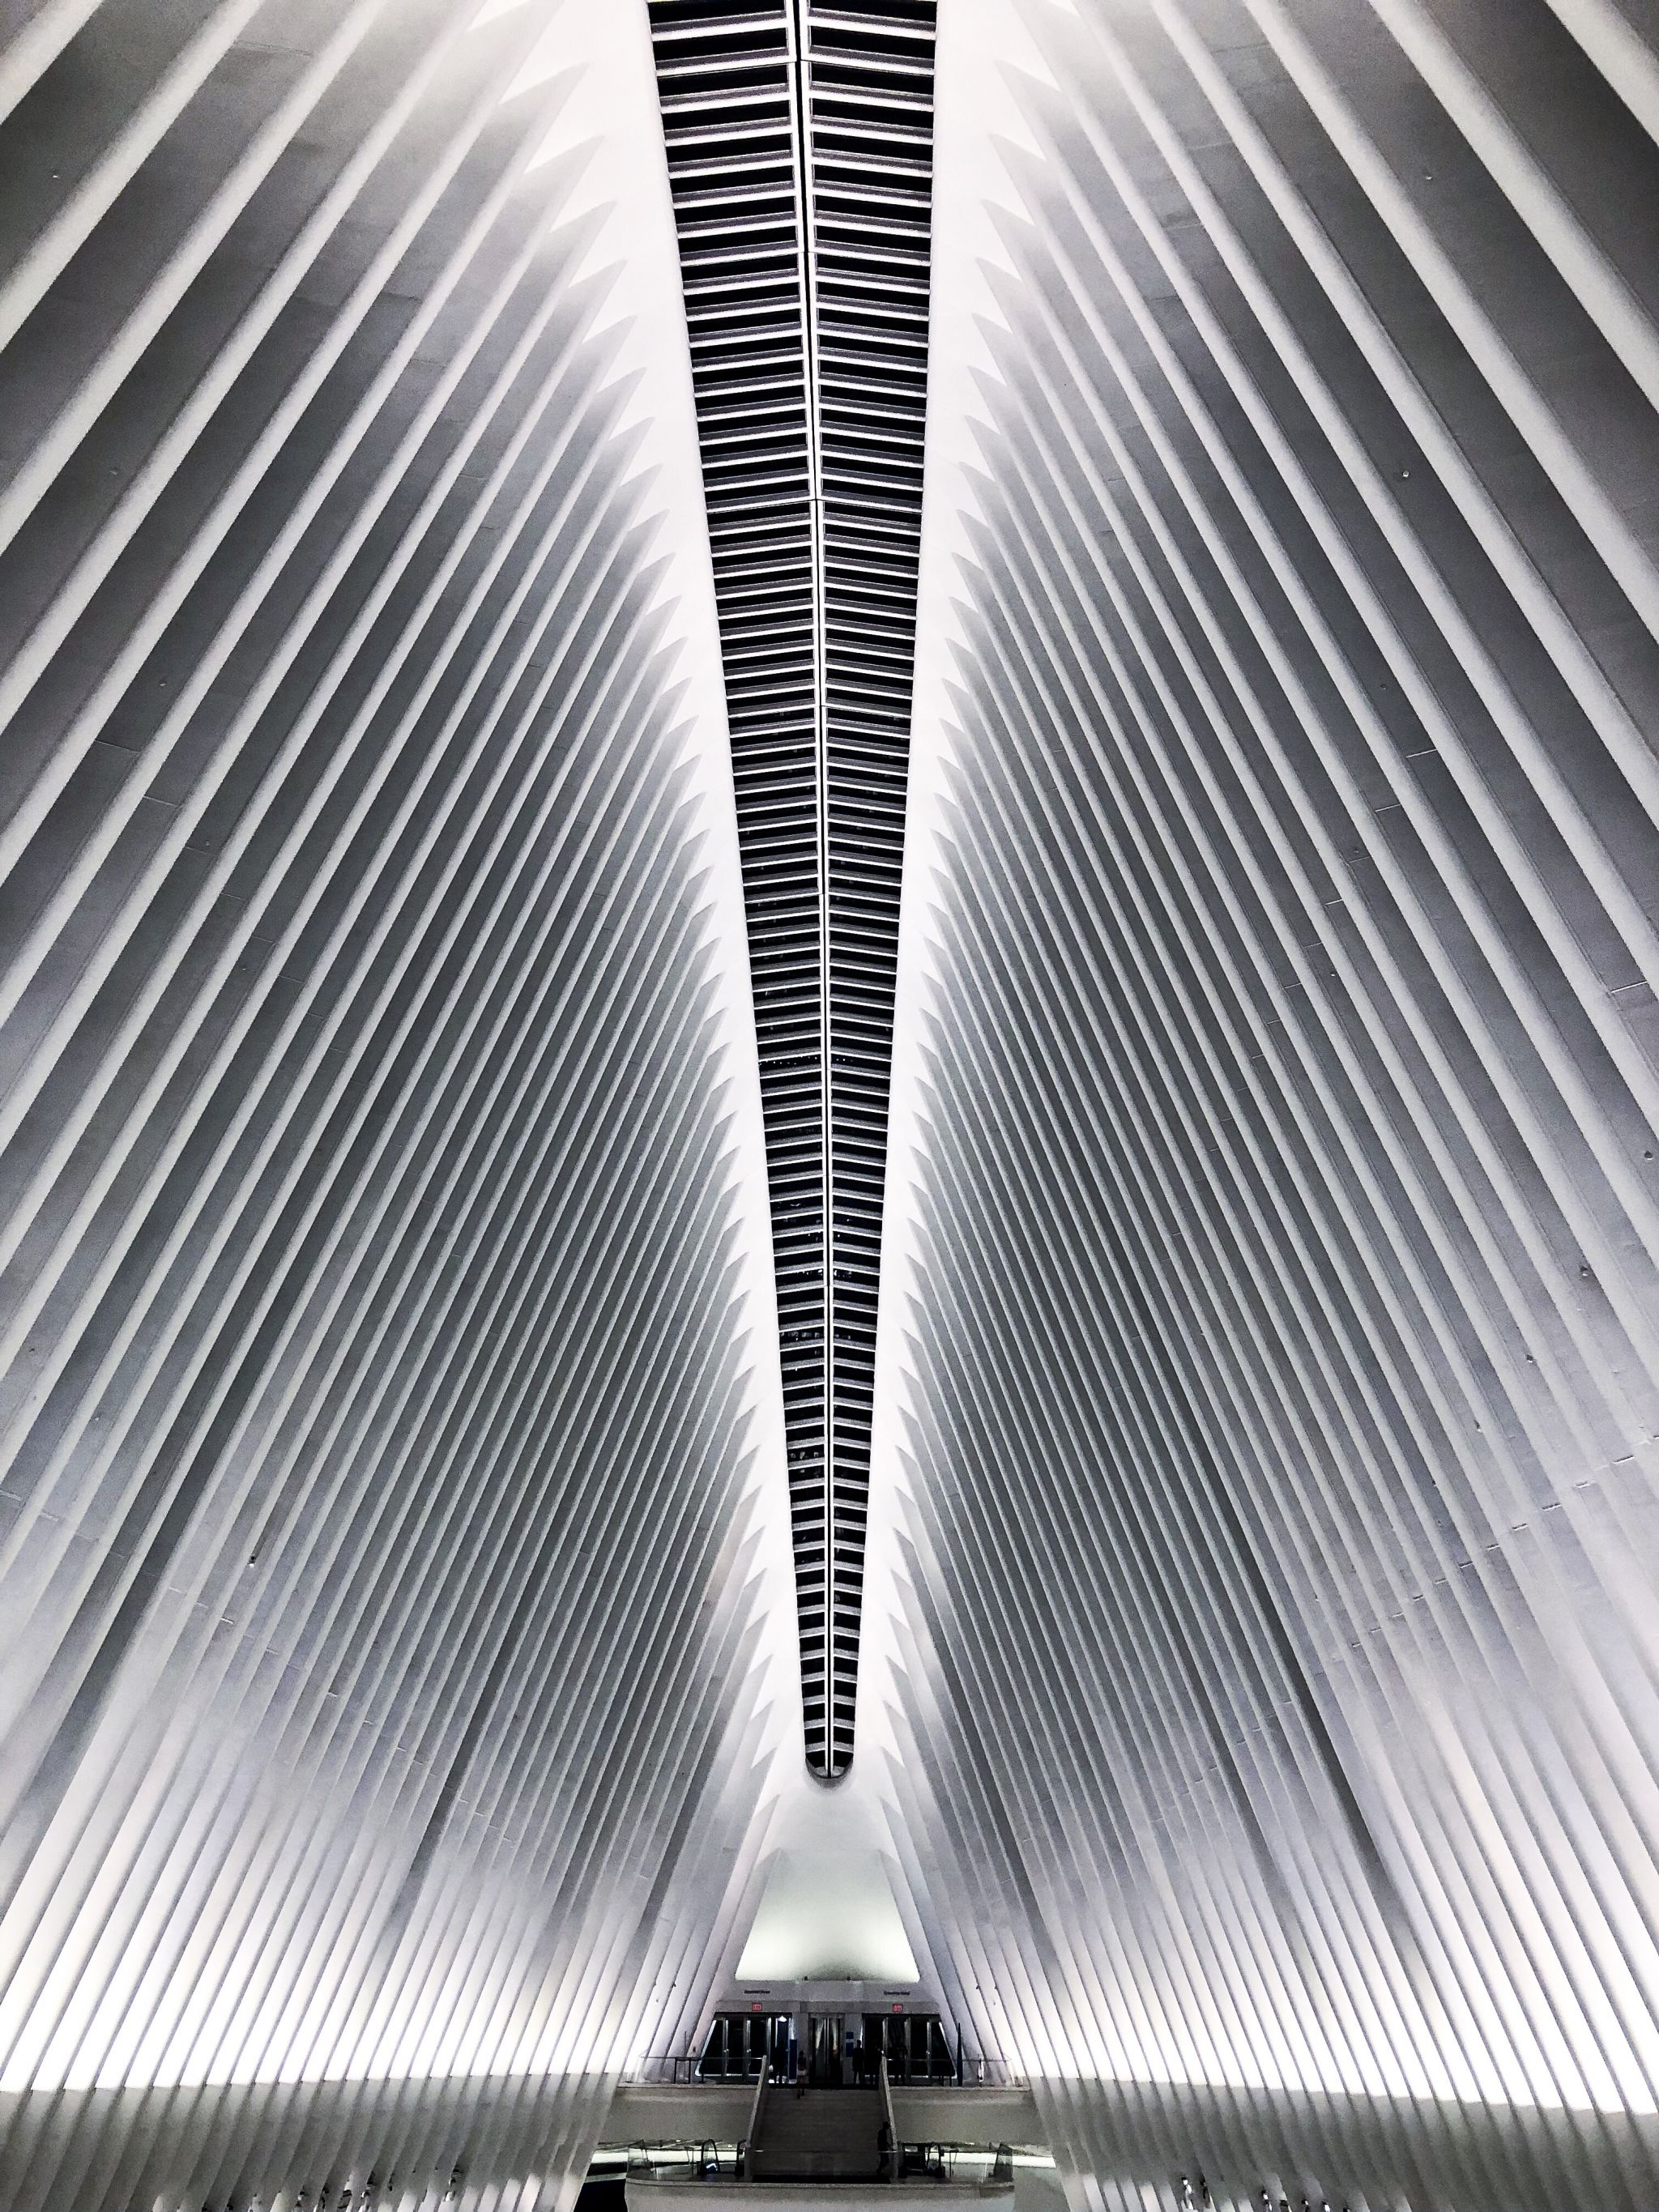 4 Tage in New York City -the Oculus at The World Trade Center - Nowshine Reiseblog ü 40